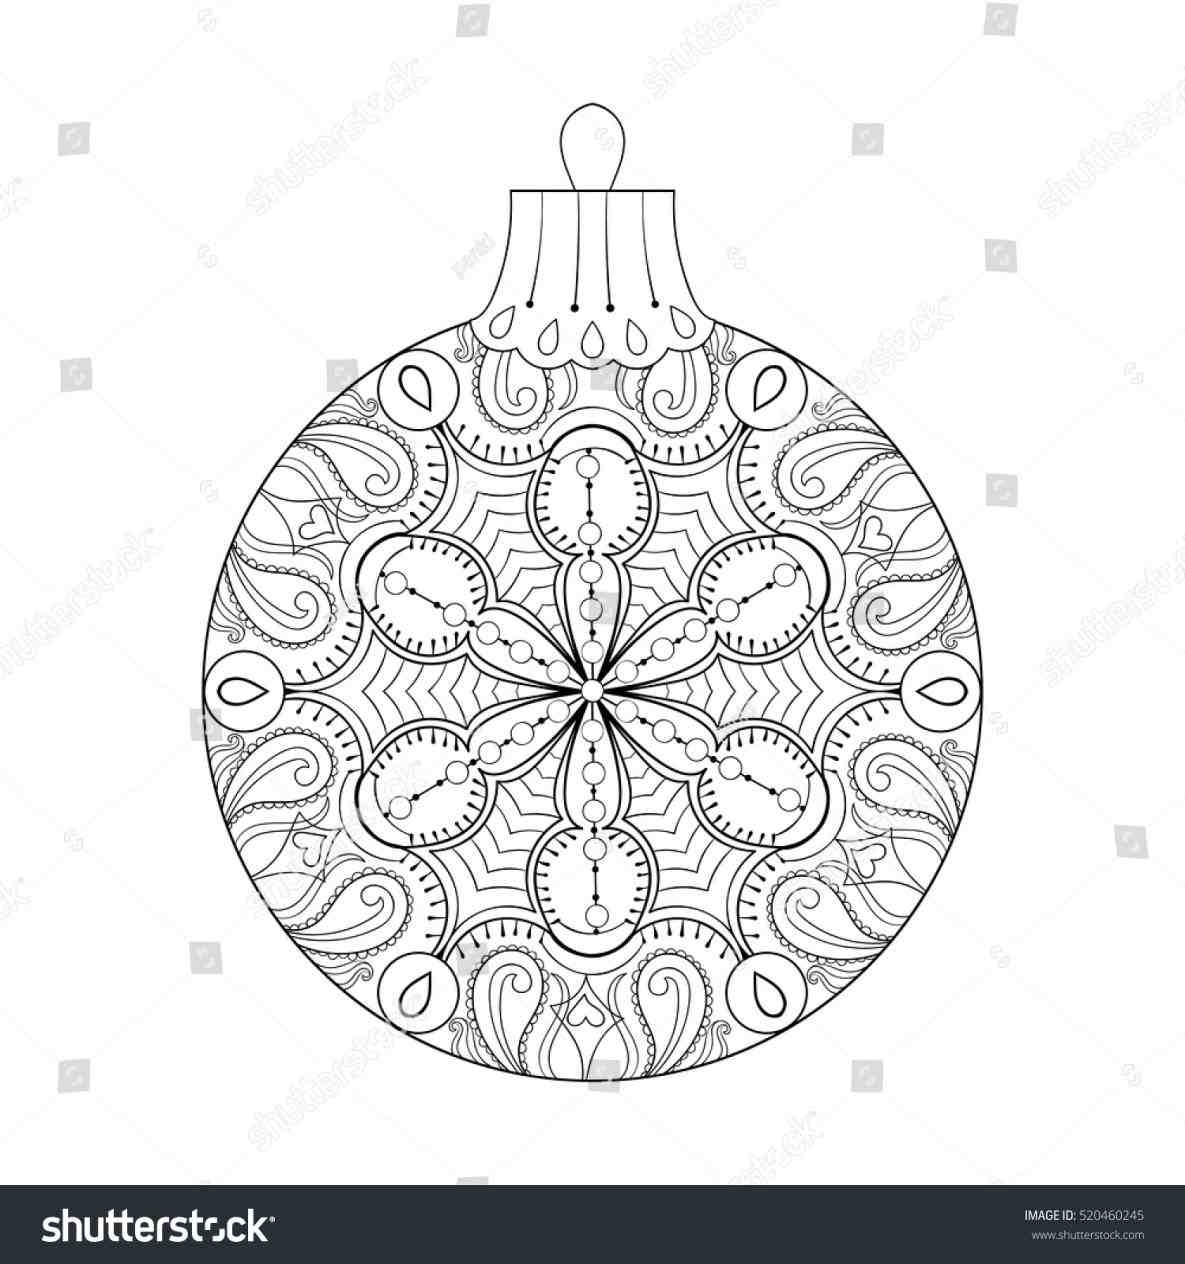 red ribbon week coloring pages - vintage christmas ornament drawing